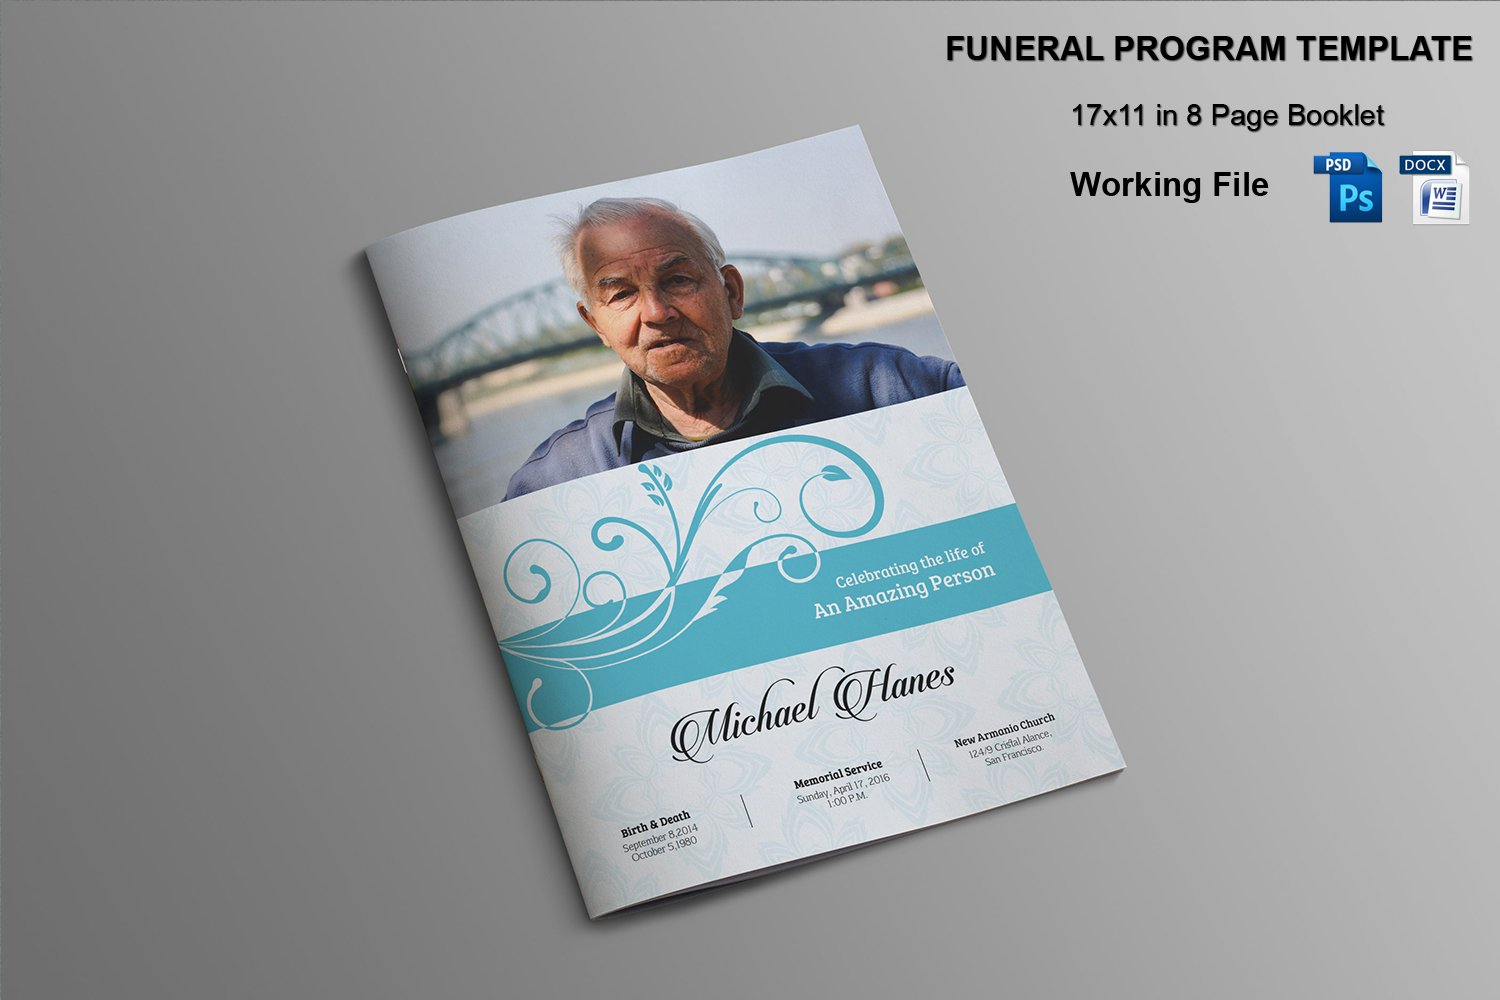 memorial pamphlets free templates - 8 page funeral booklet template v482 brochure templates creative market